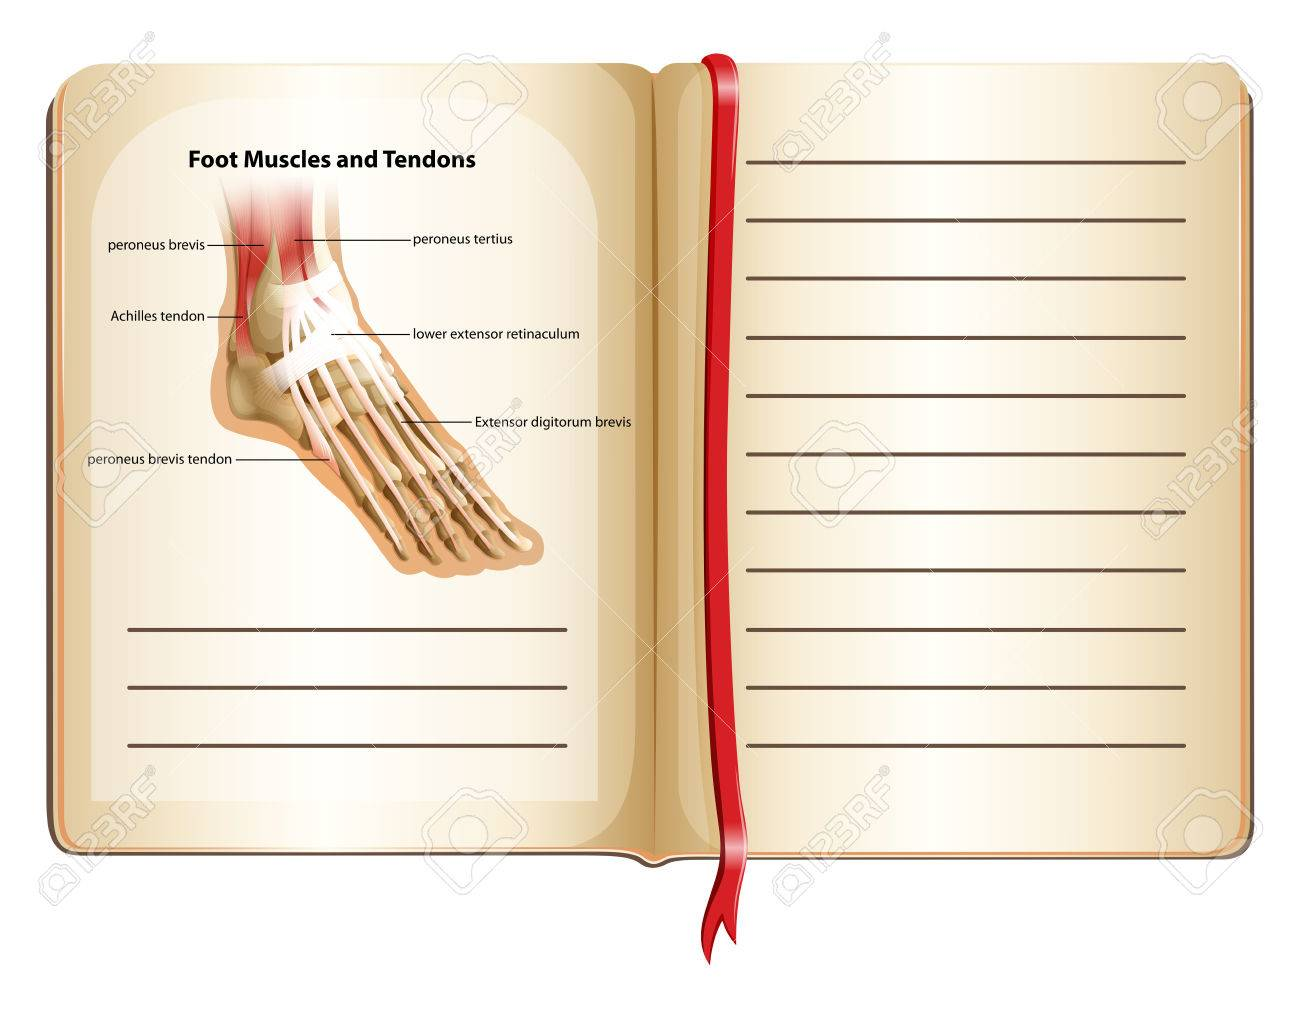 Foot Muscles And Tendons On Page Illustration Royalty Free Cliparts